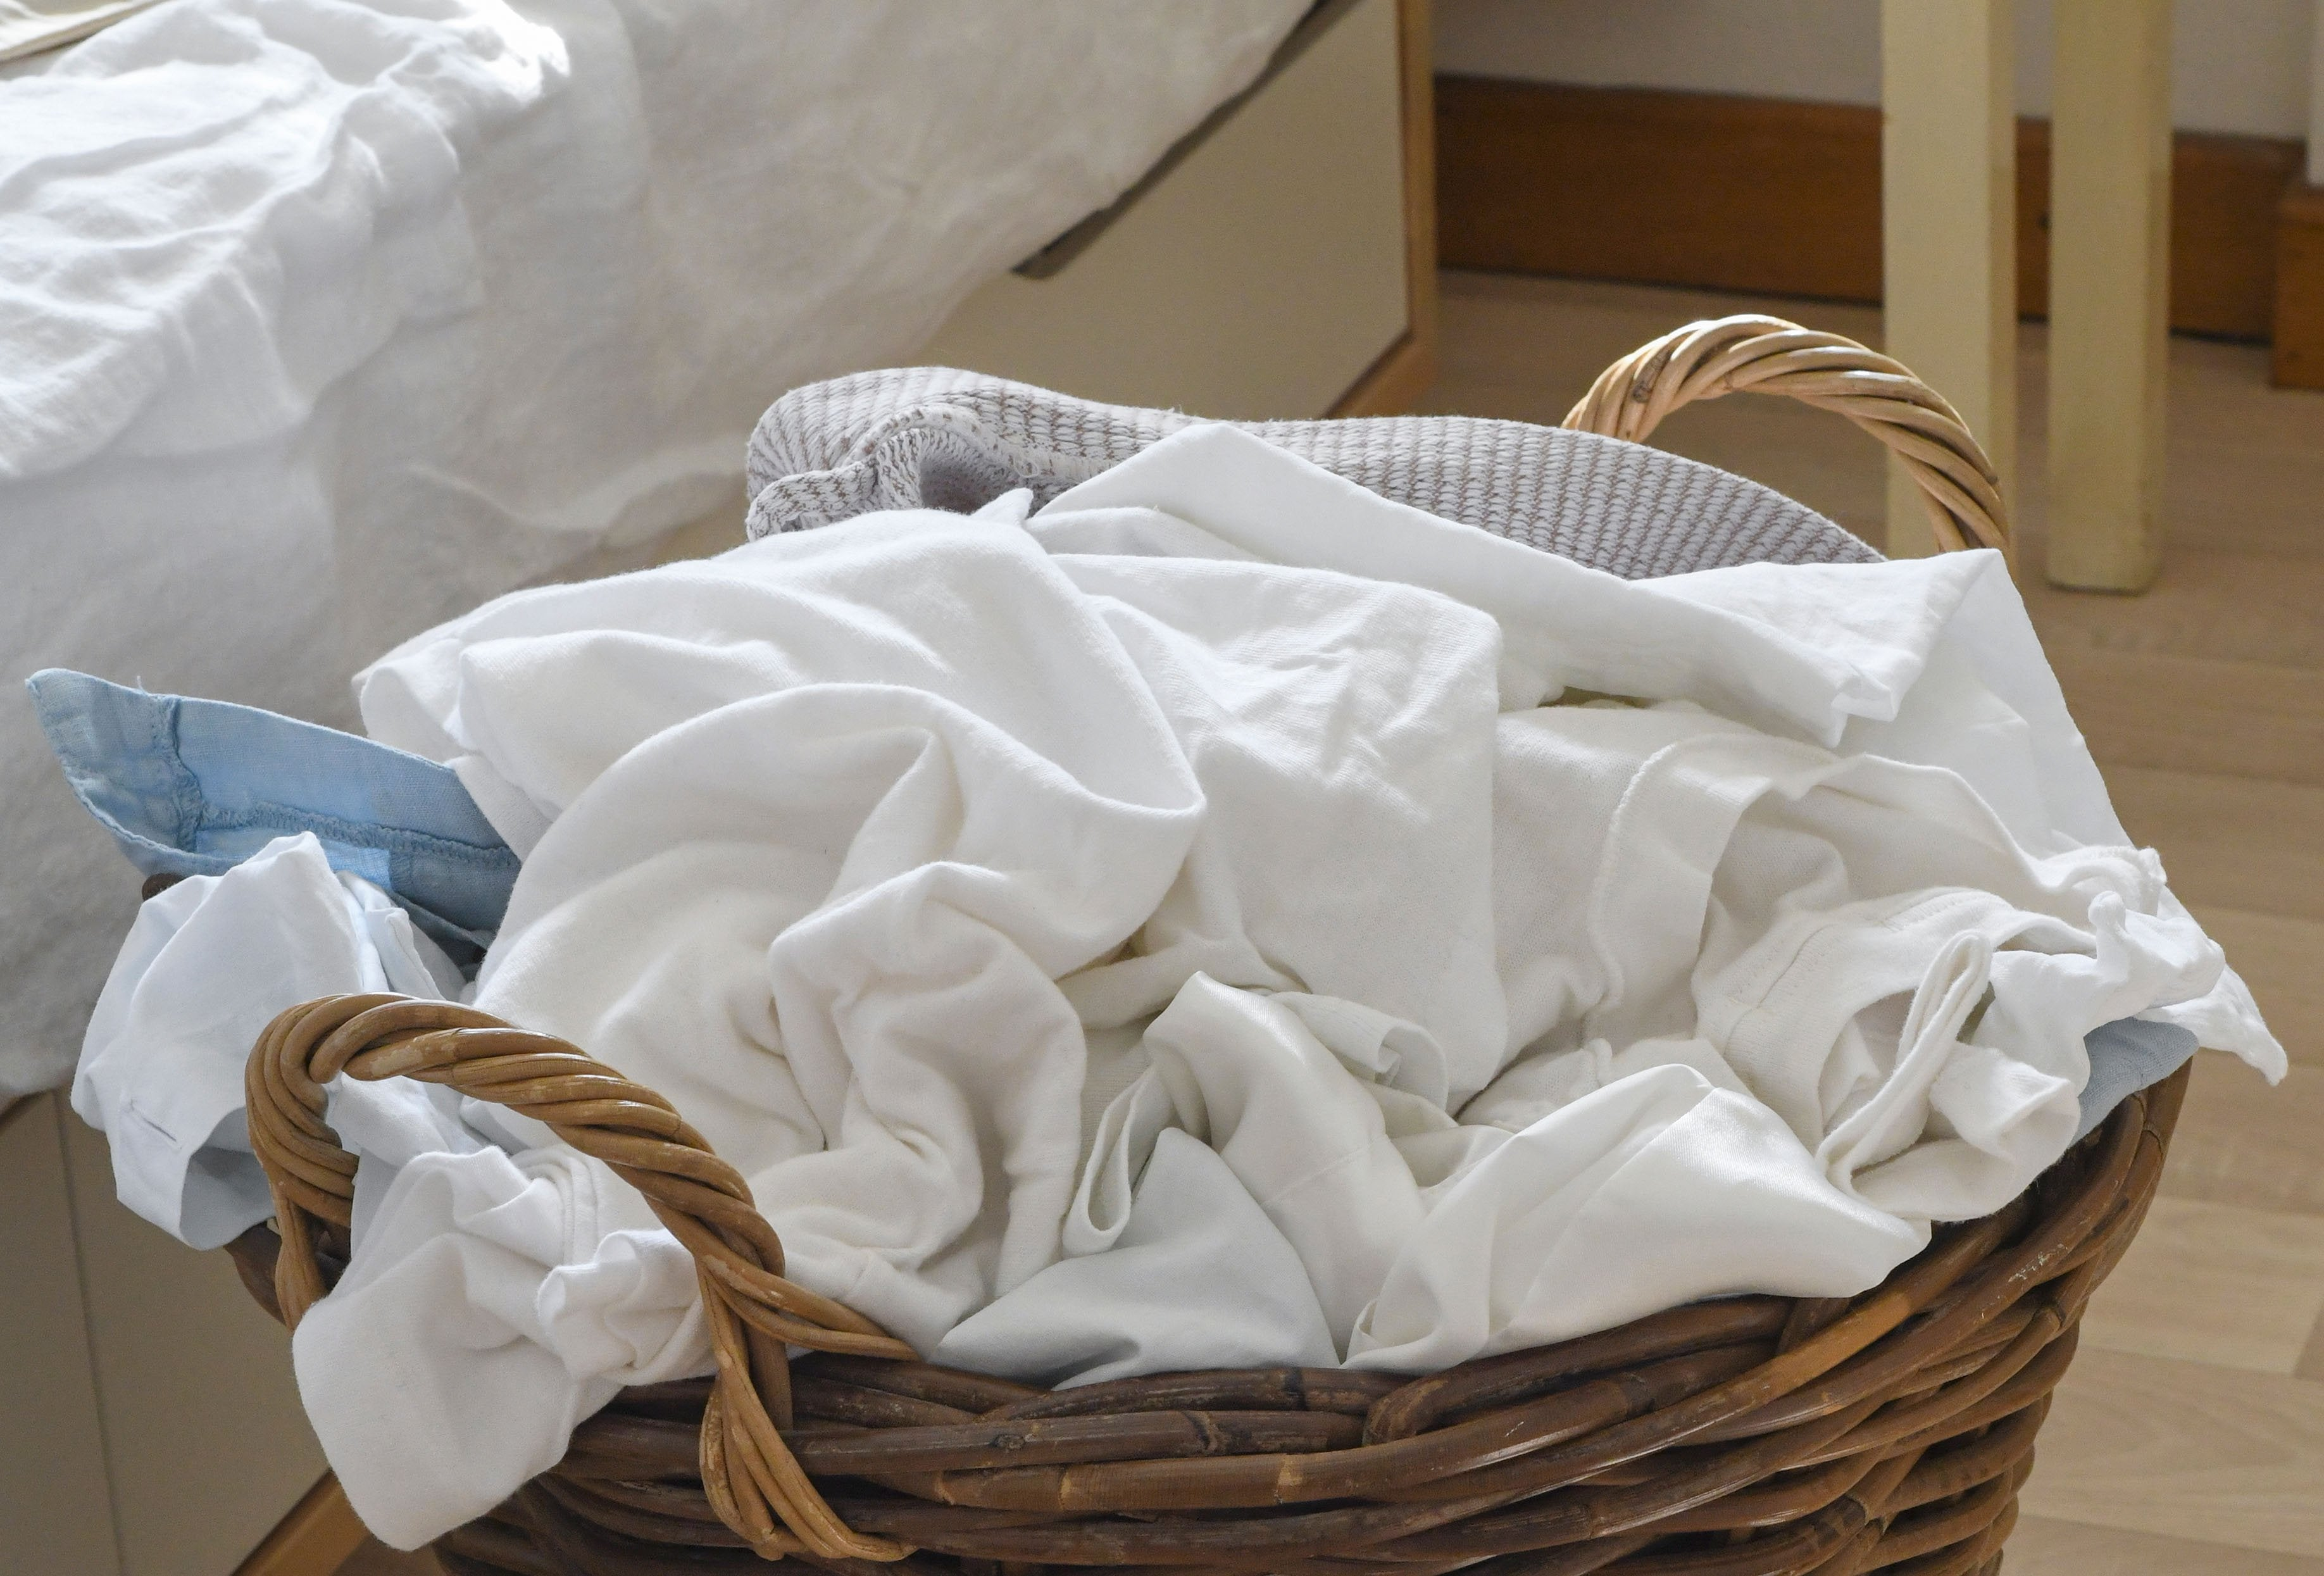 Close up of laundry in a wicker basket on a bedroom floor.